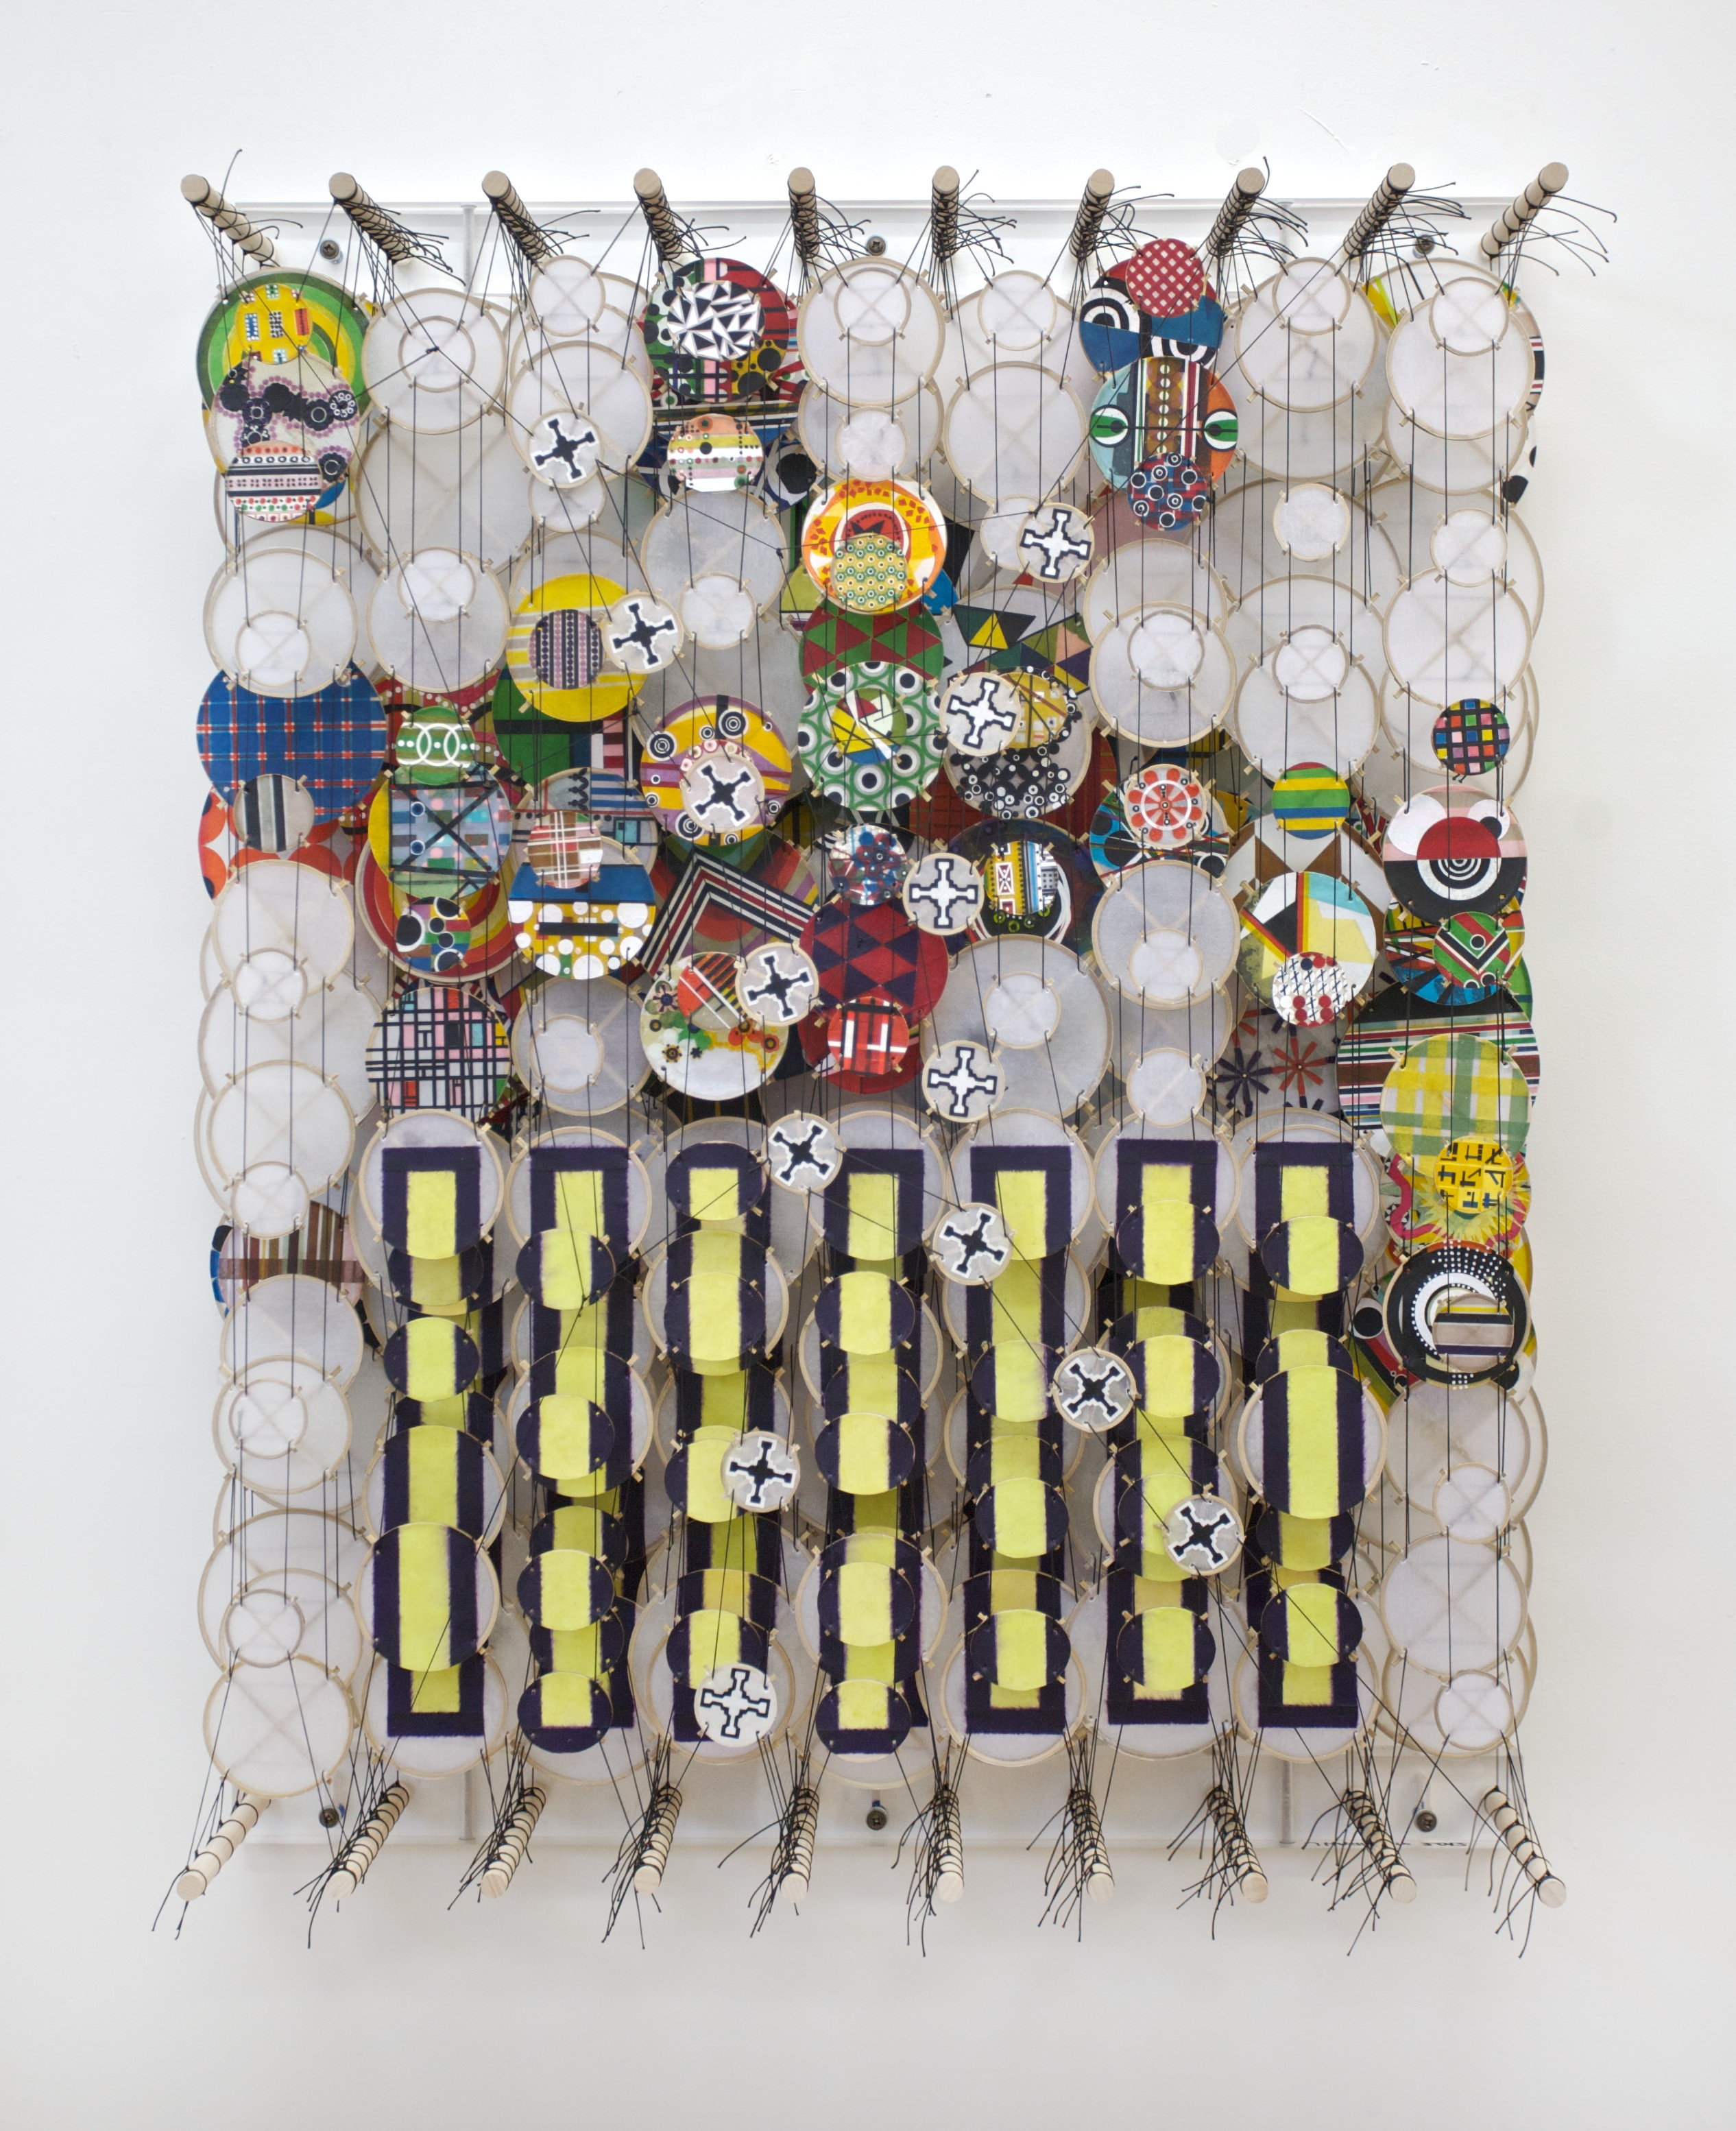 Jacob Hashimoto, The Half Truths of Conscious Thoughts, 2012, bamboo, paper, dacron, acrylic, 92 x 72 x 20 cm